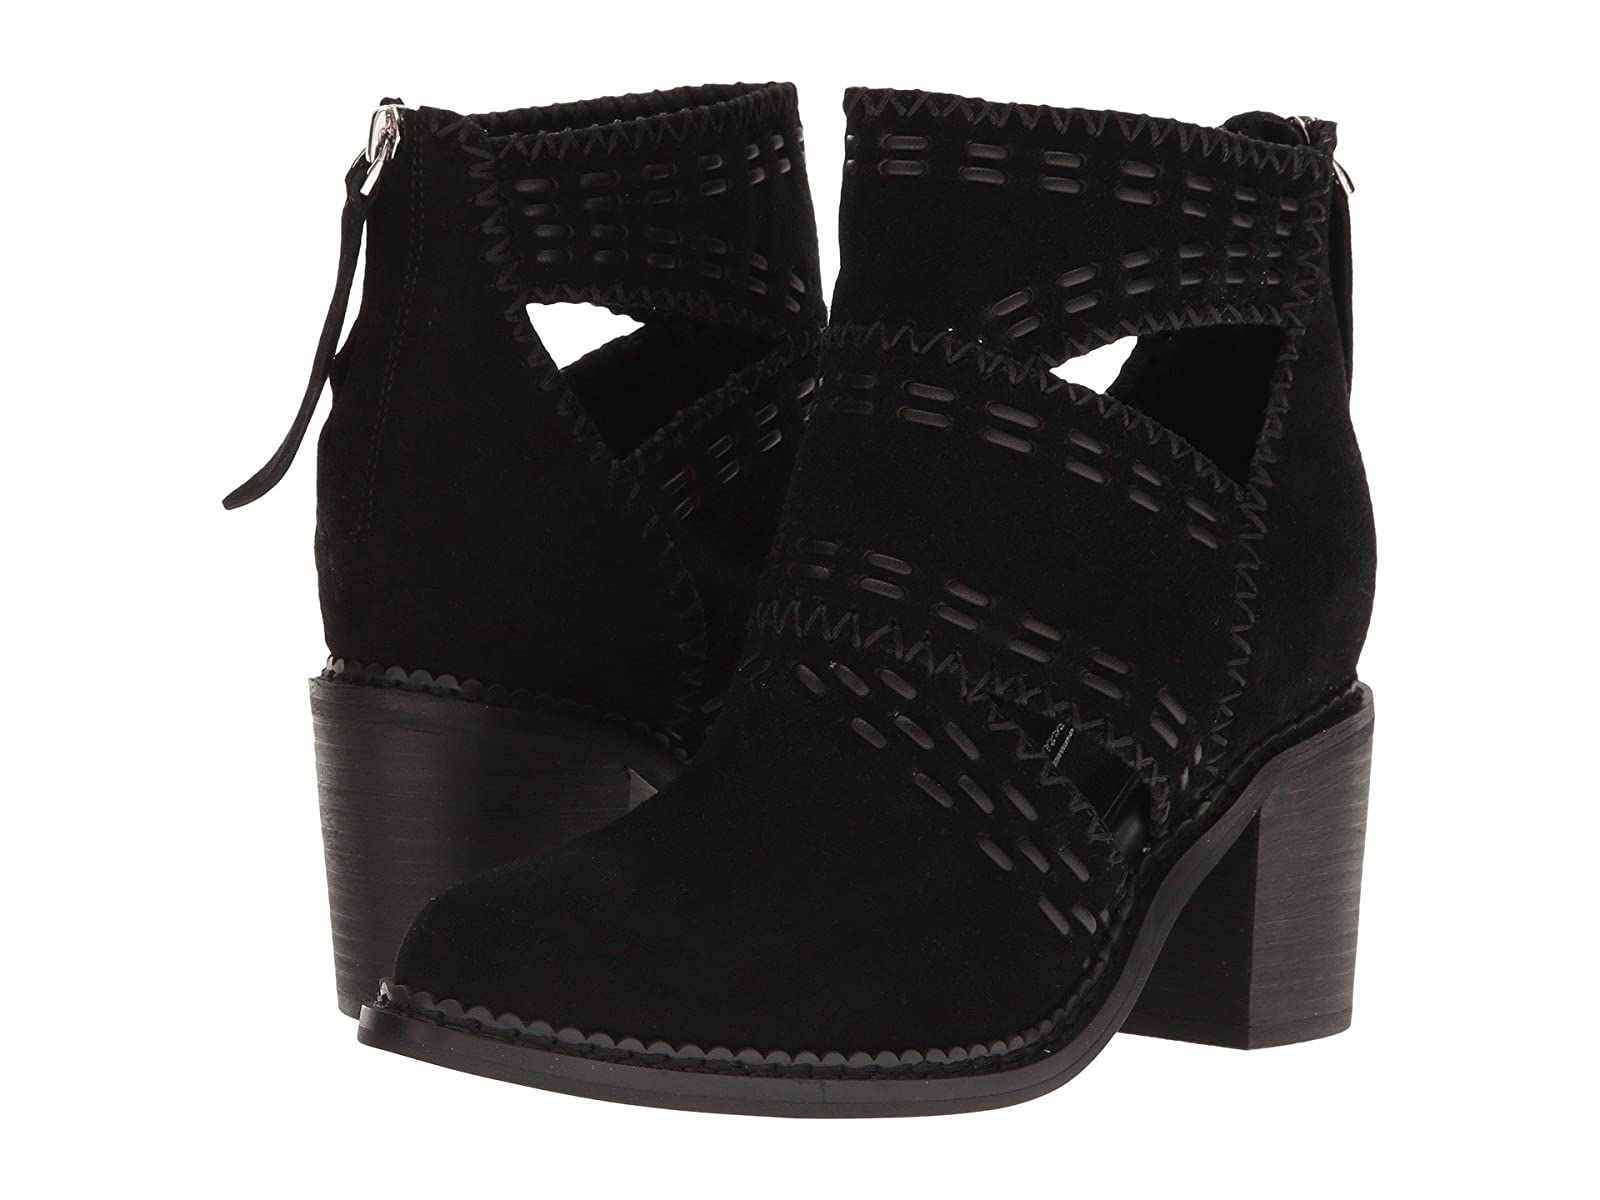 Sbicca JosslyCheap and distinctive eye-catching shoes